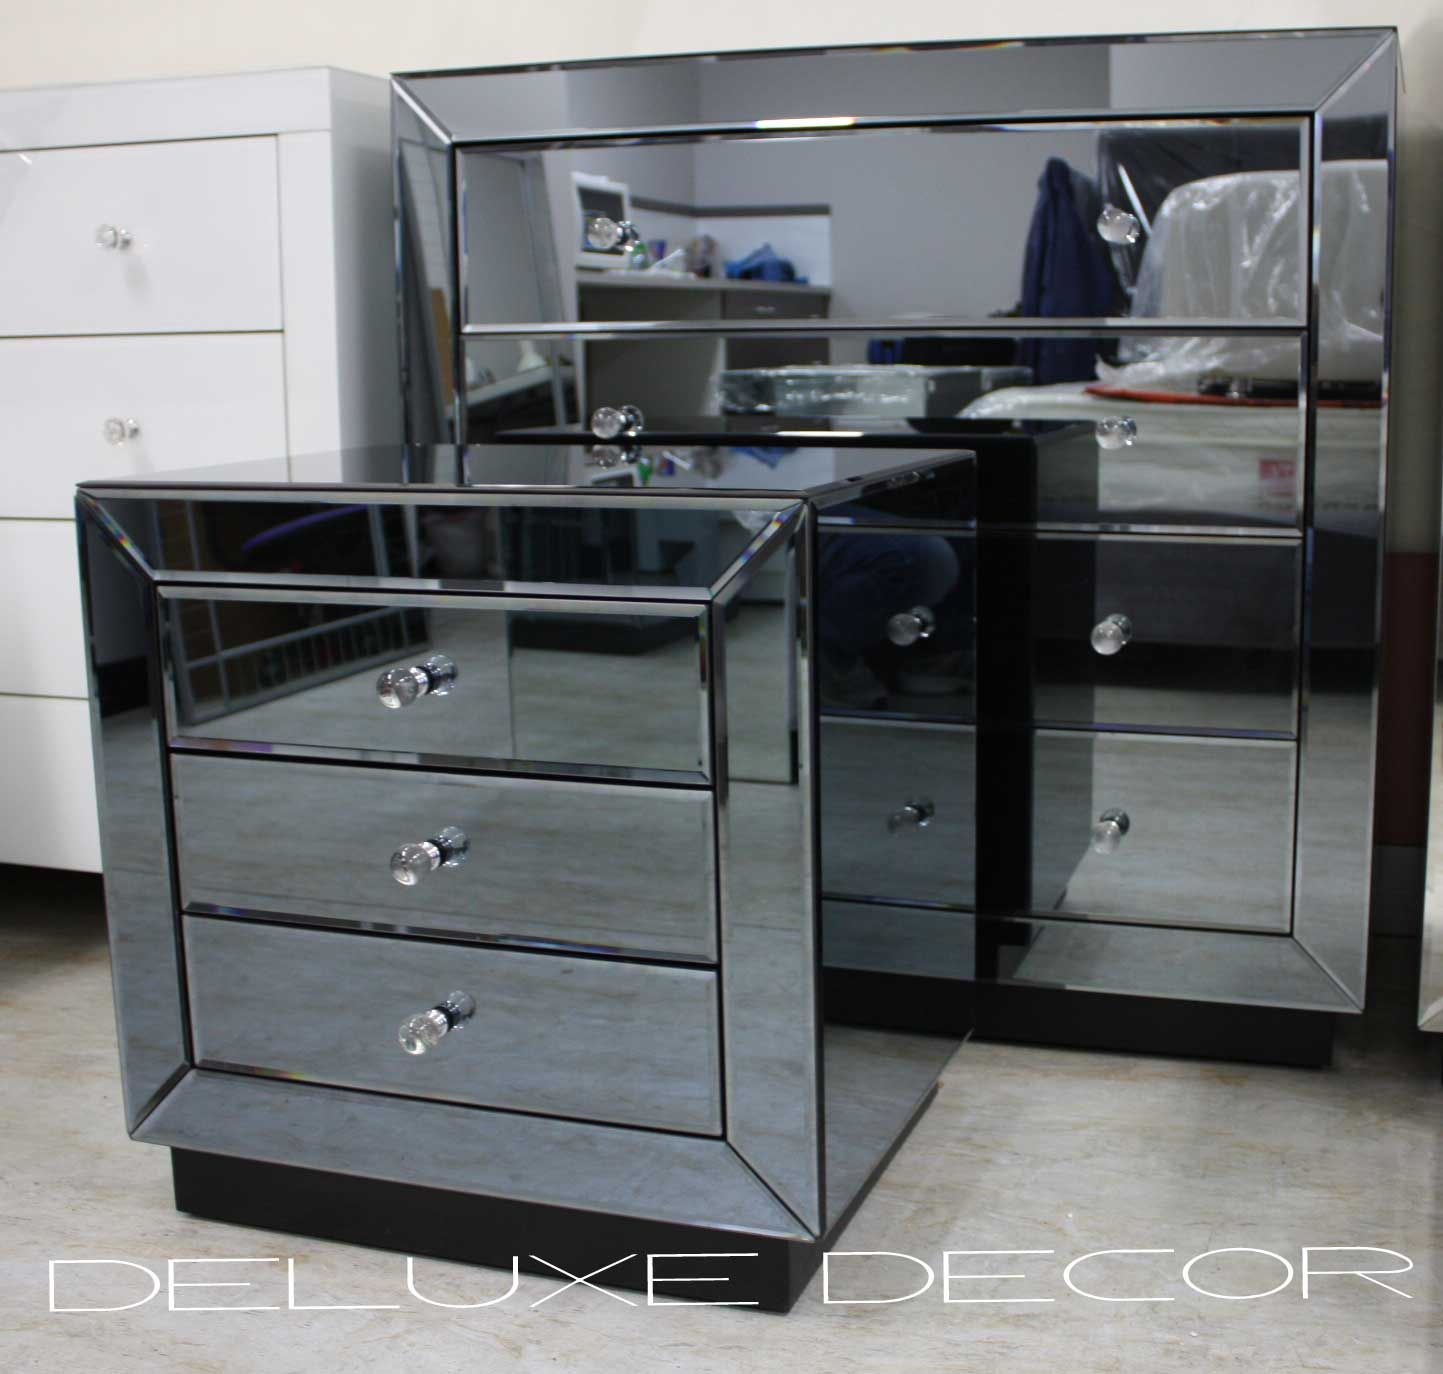 Wondrous Mirrored Bedroom Furniture with Elegant Interior: Gold Mirrored Dresser Silver Mirrored Dresser Mirrored Bedroom Furniture